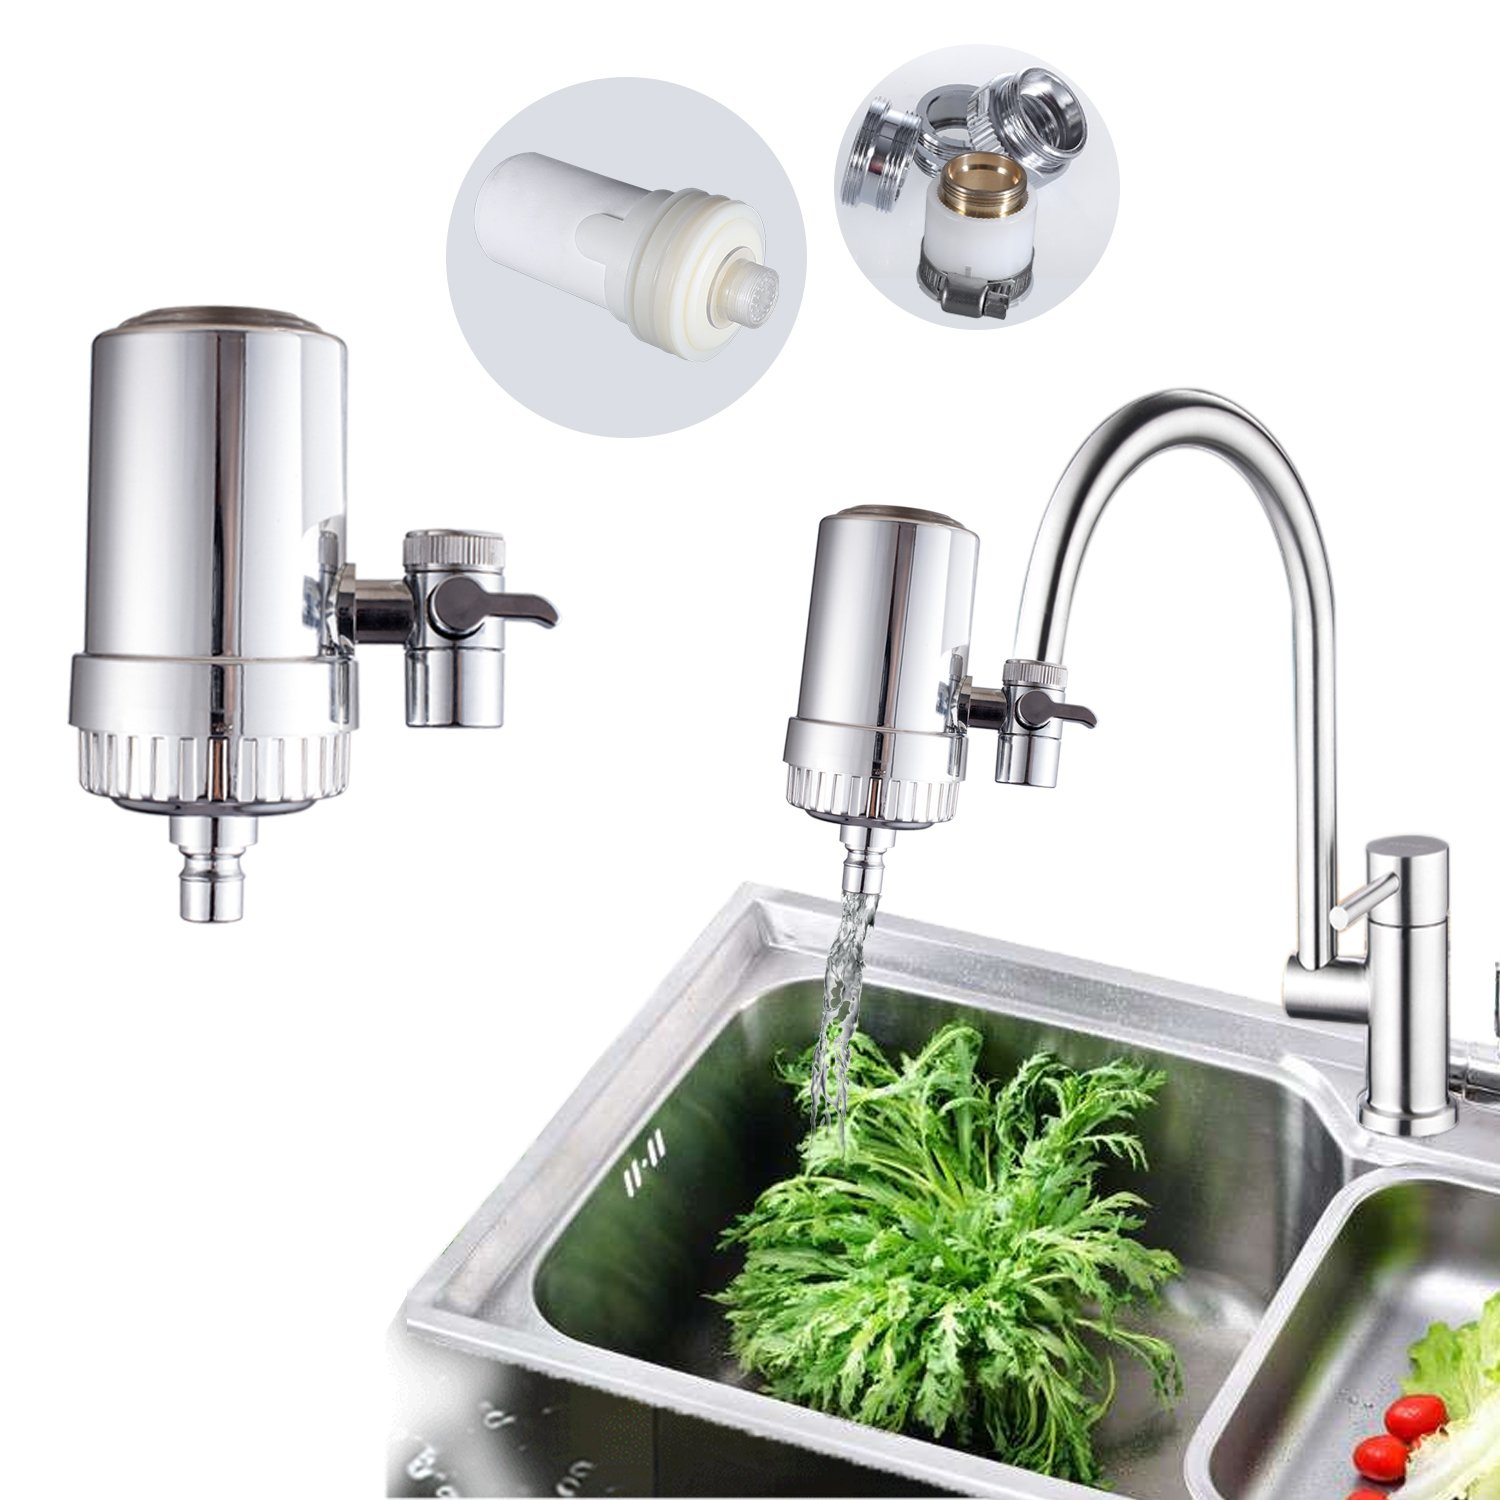 HuangXin Water Filter Faucet System Stainless Steel Advanced Device Tap Purifier for Kitchen